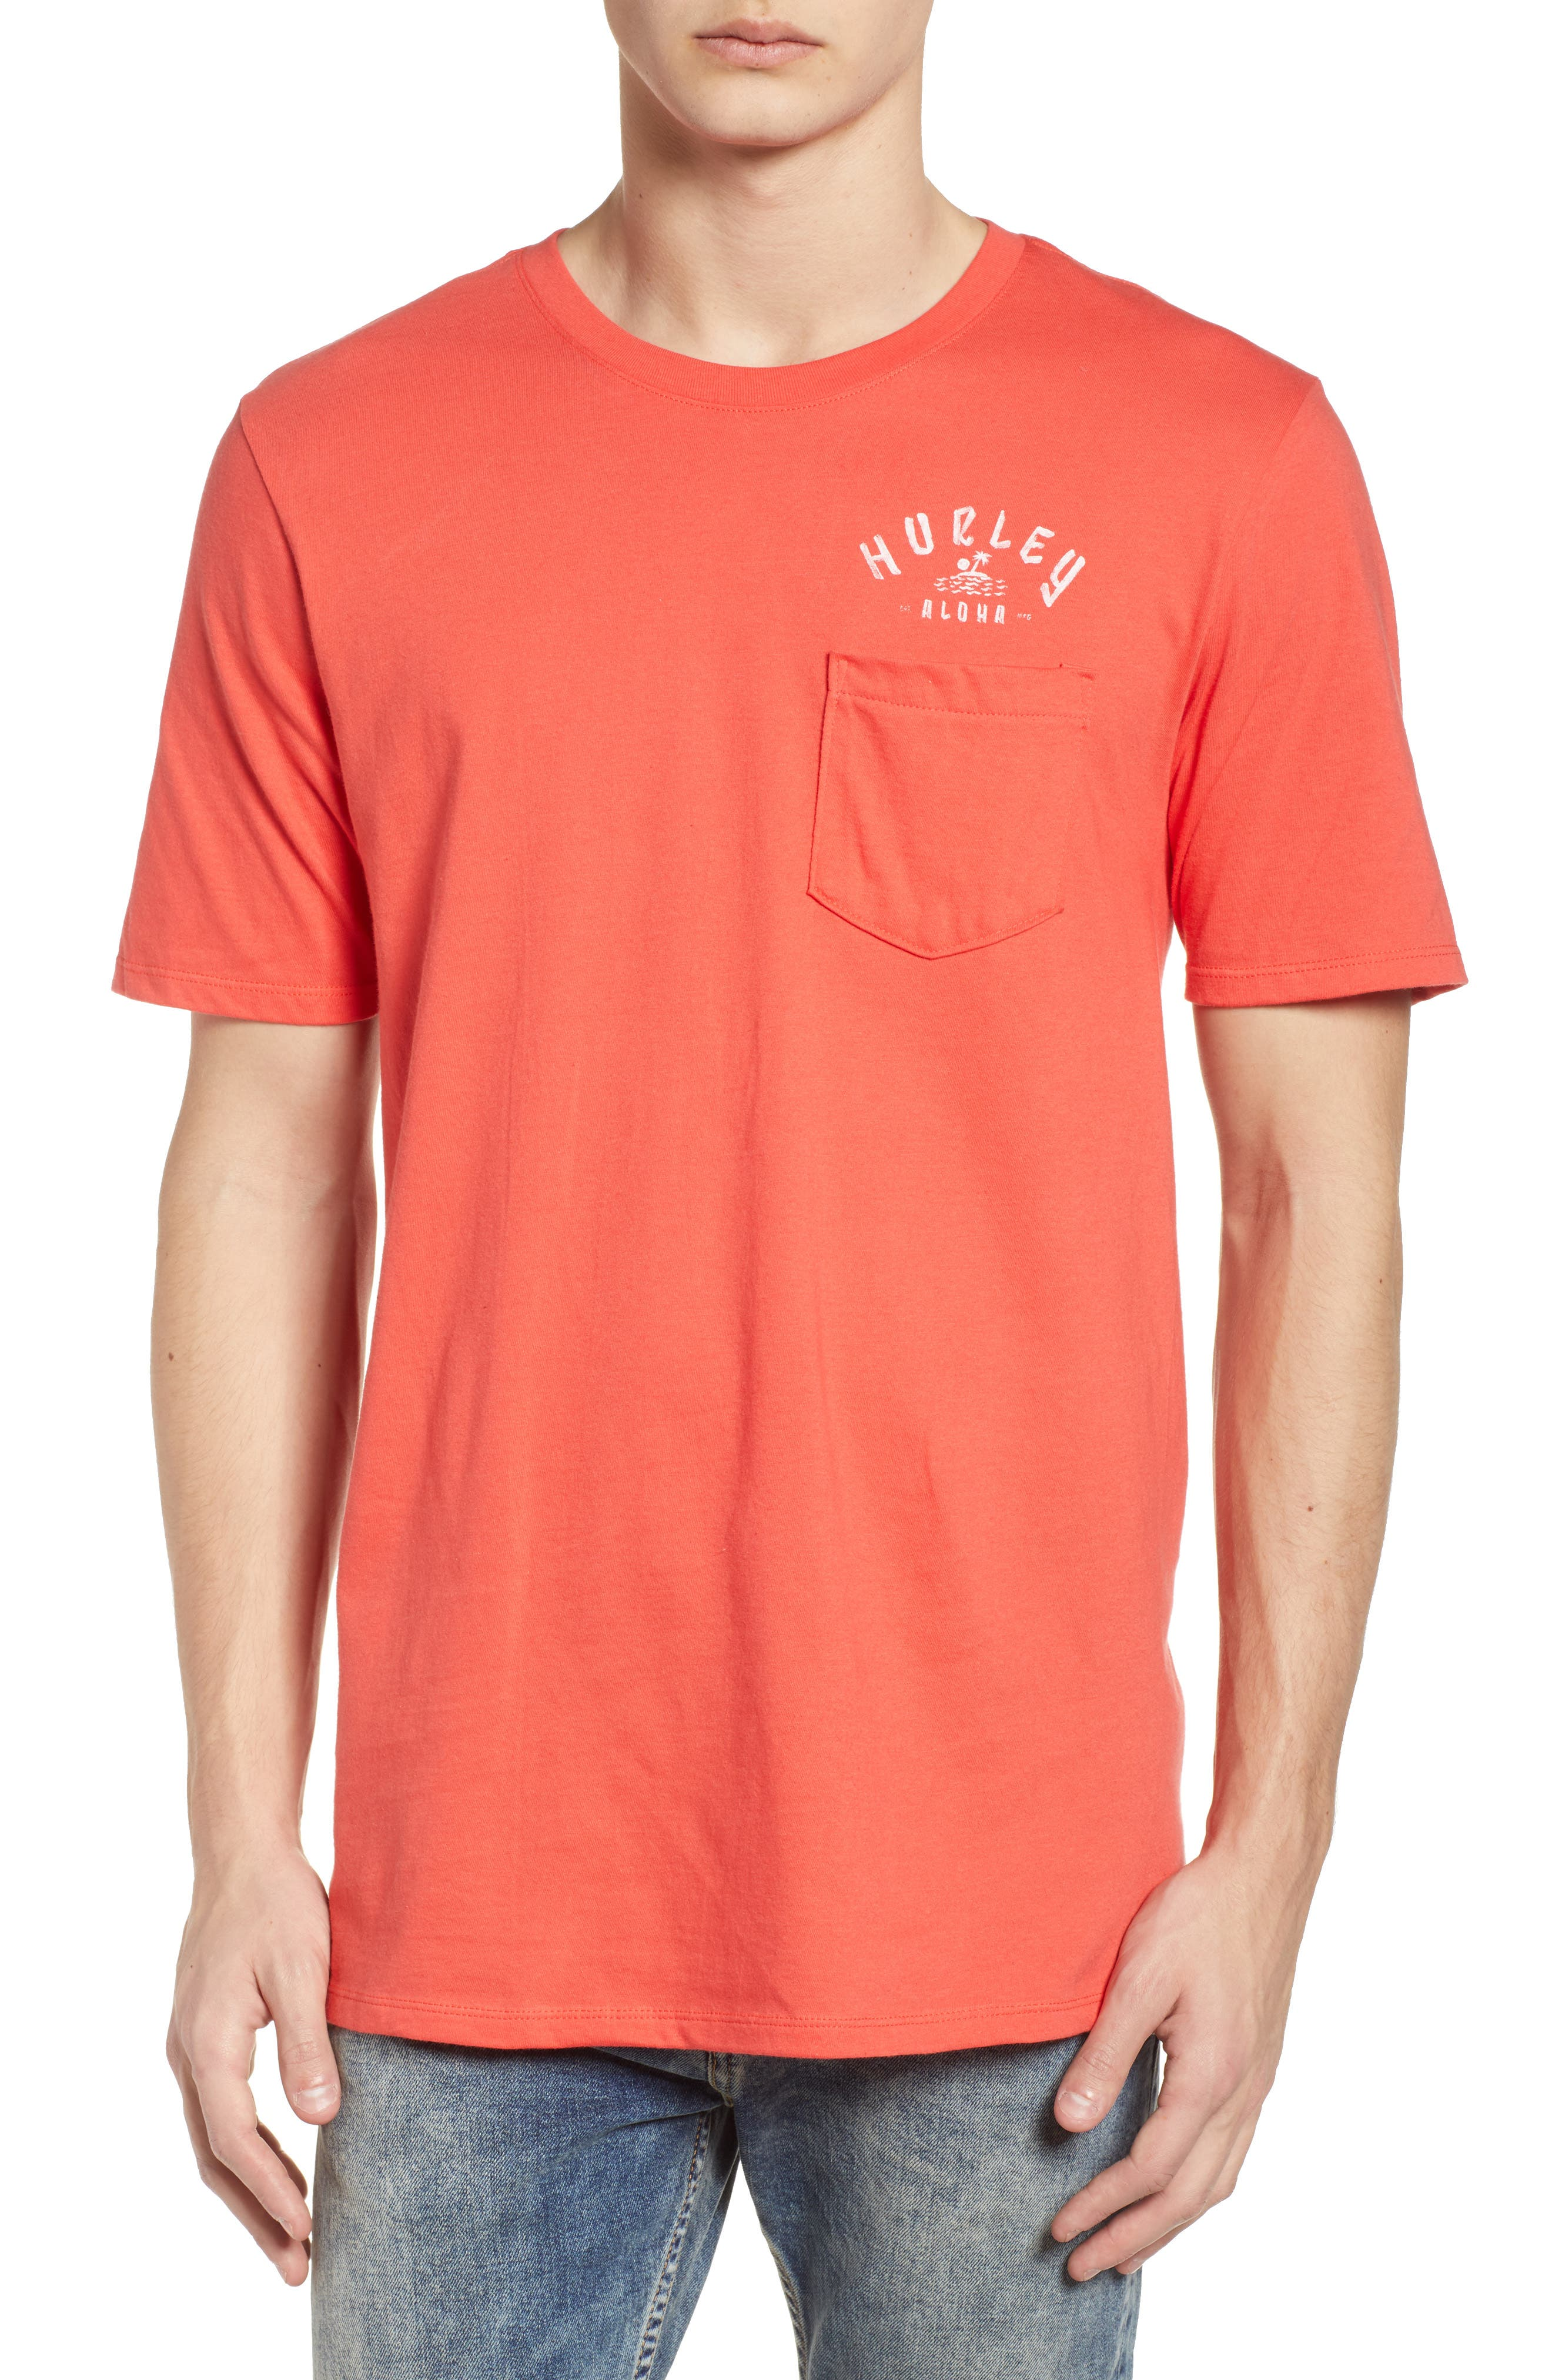 Plate Lunch Pocket T-Shirt,                         Main,                         color, Track Red